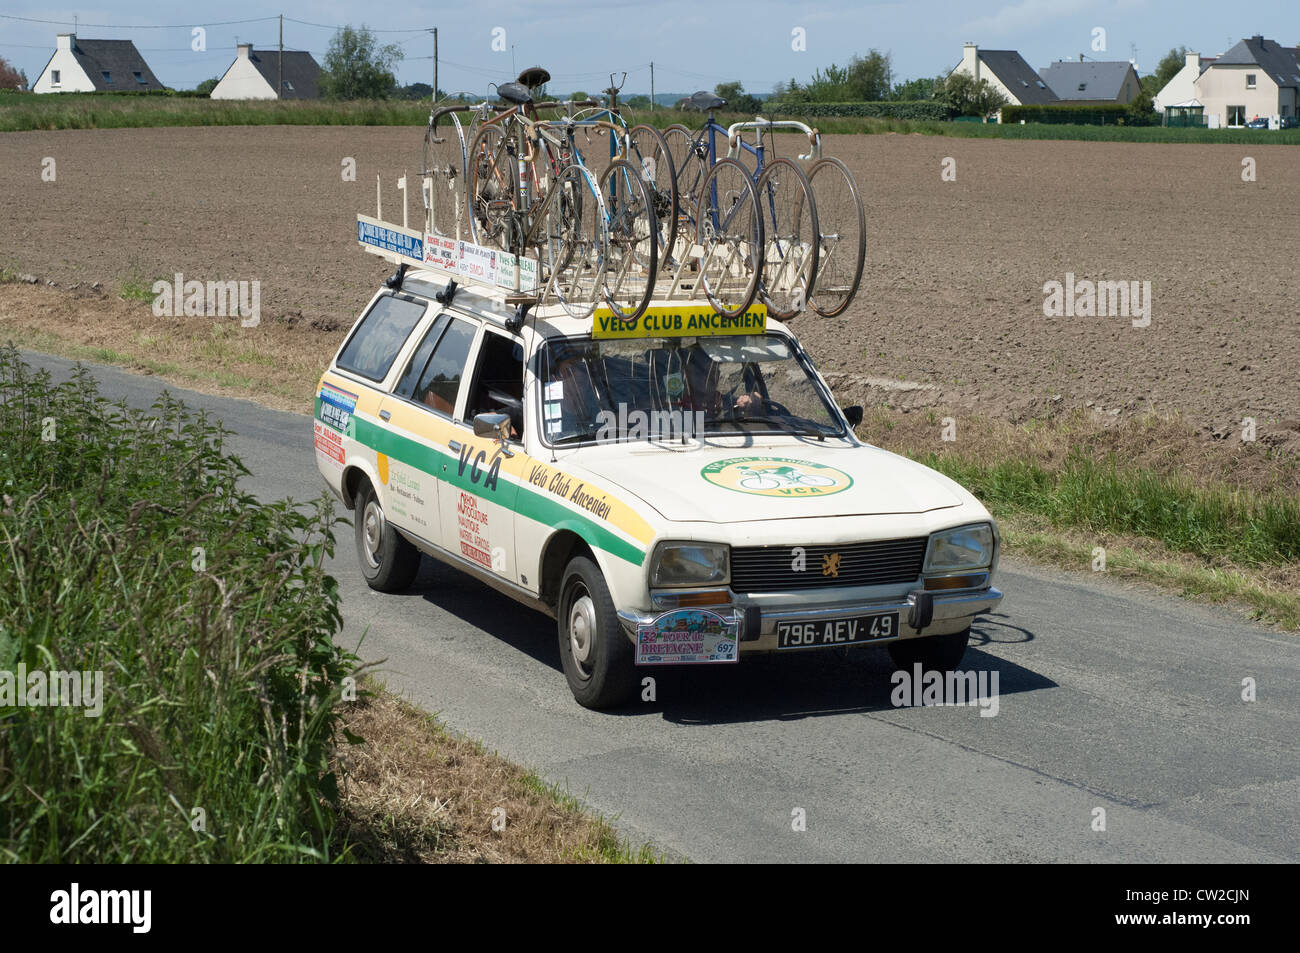 cycle rally stockfotos cycle rally bilder alamy. Black Bedroom Furniture Sets. Home Design Ideas